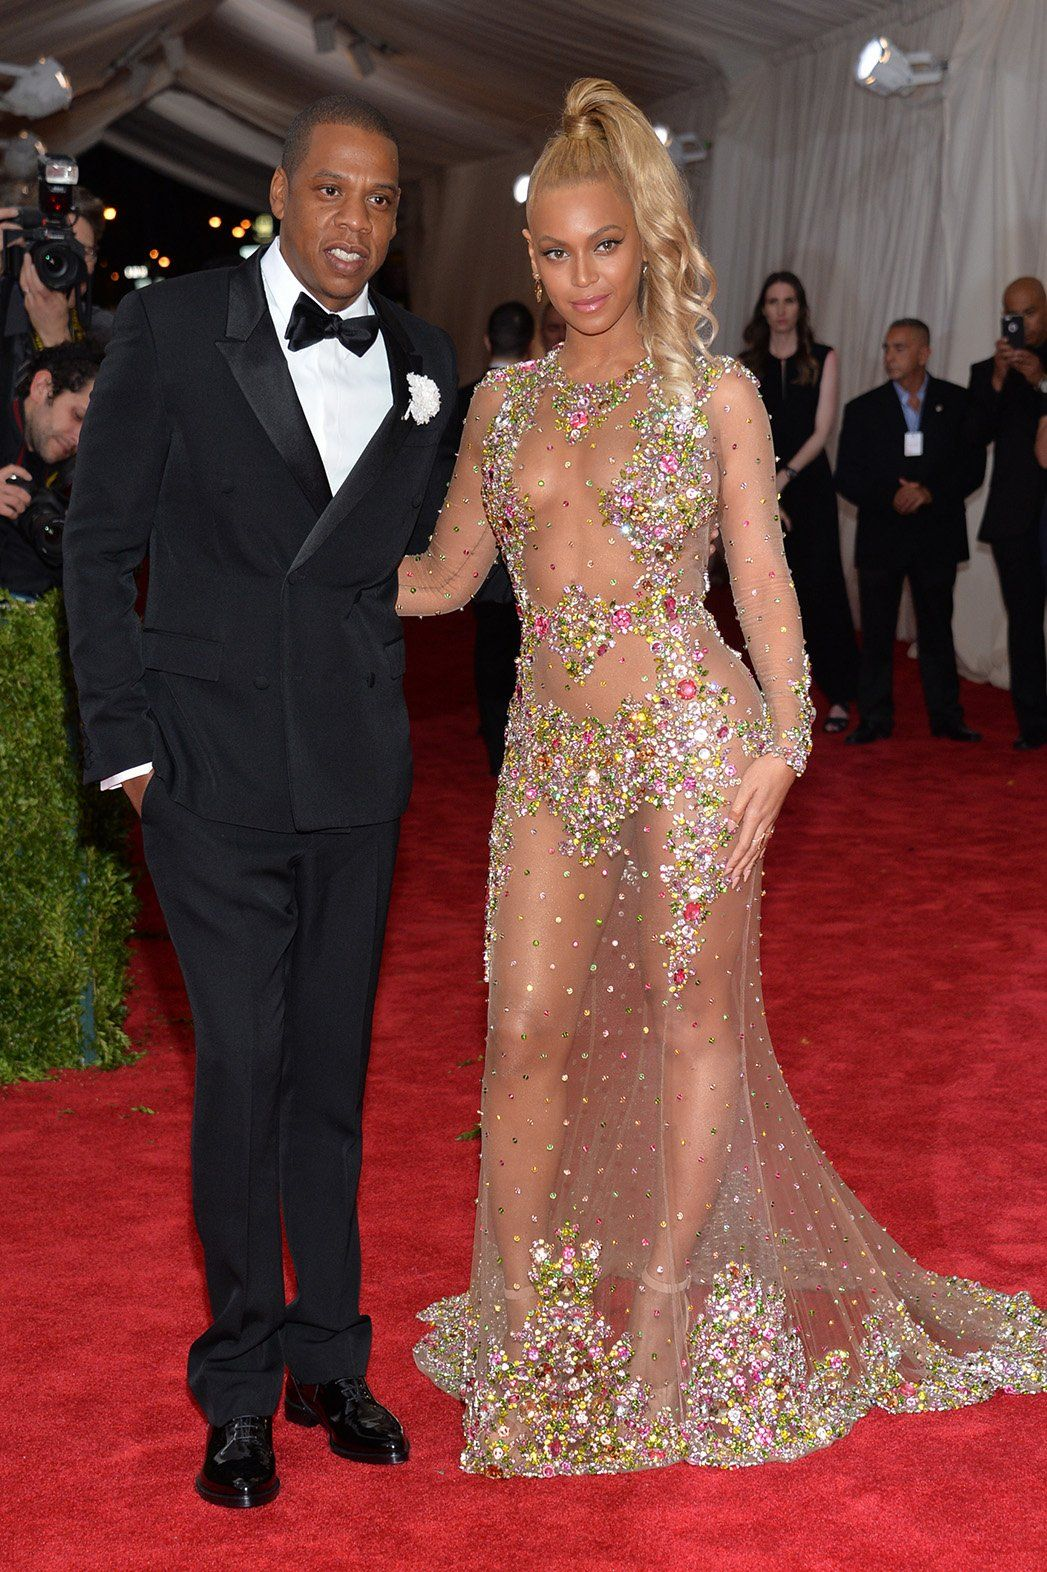 Jay Z and Beyonce (in custom Givenchy) made a stunning entrance at Monday's gala